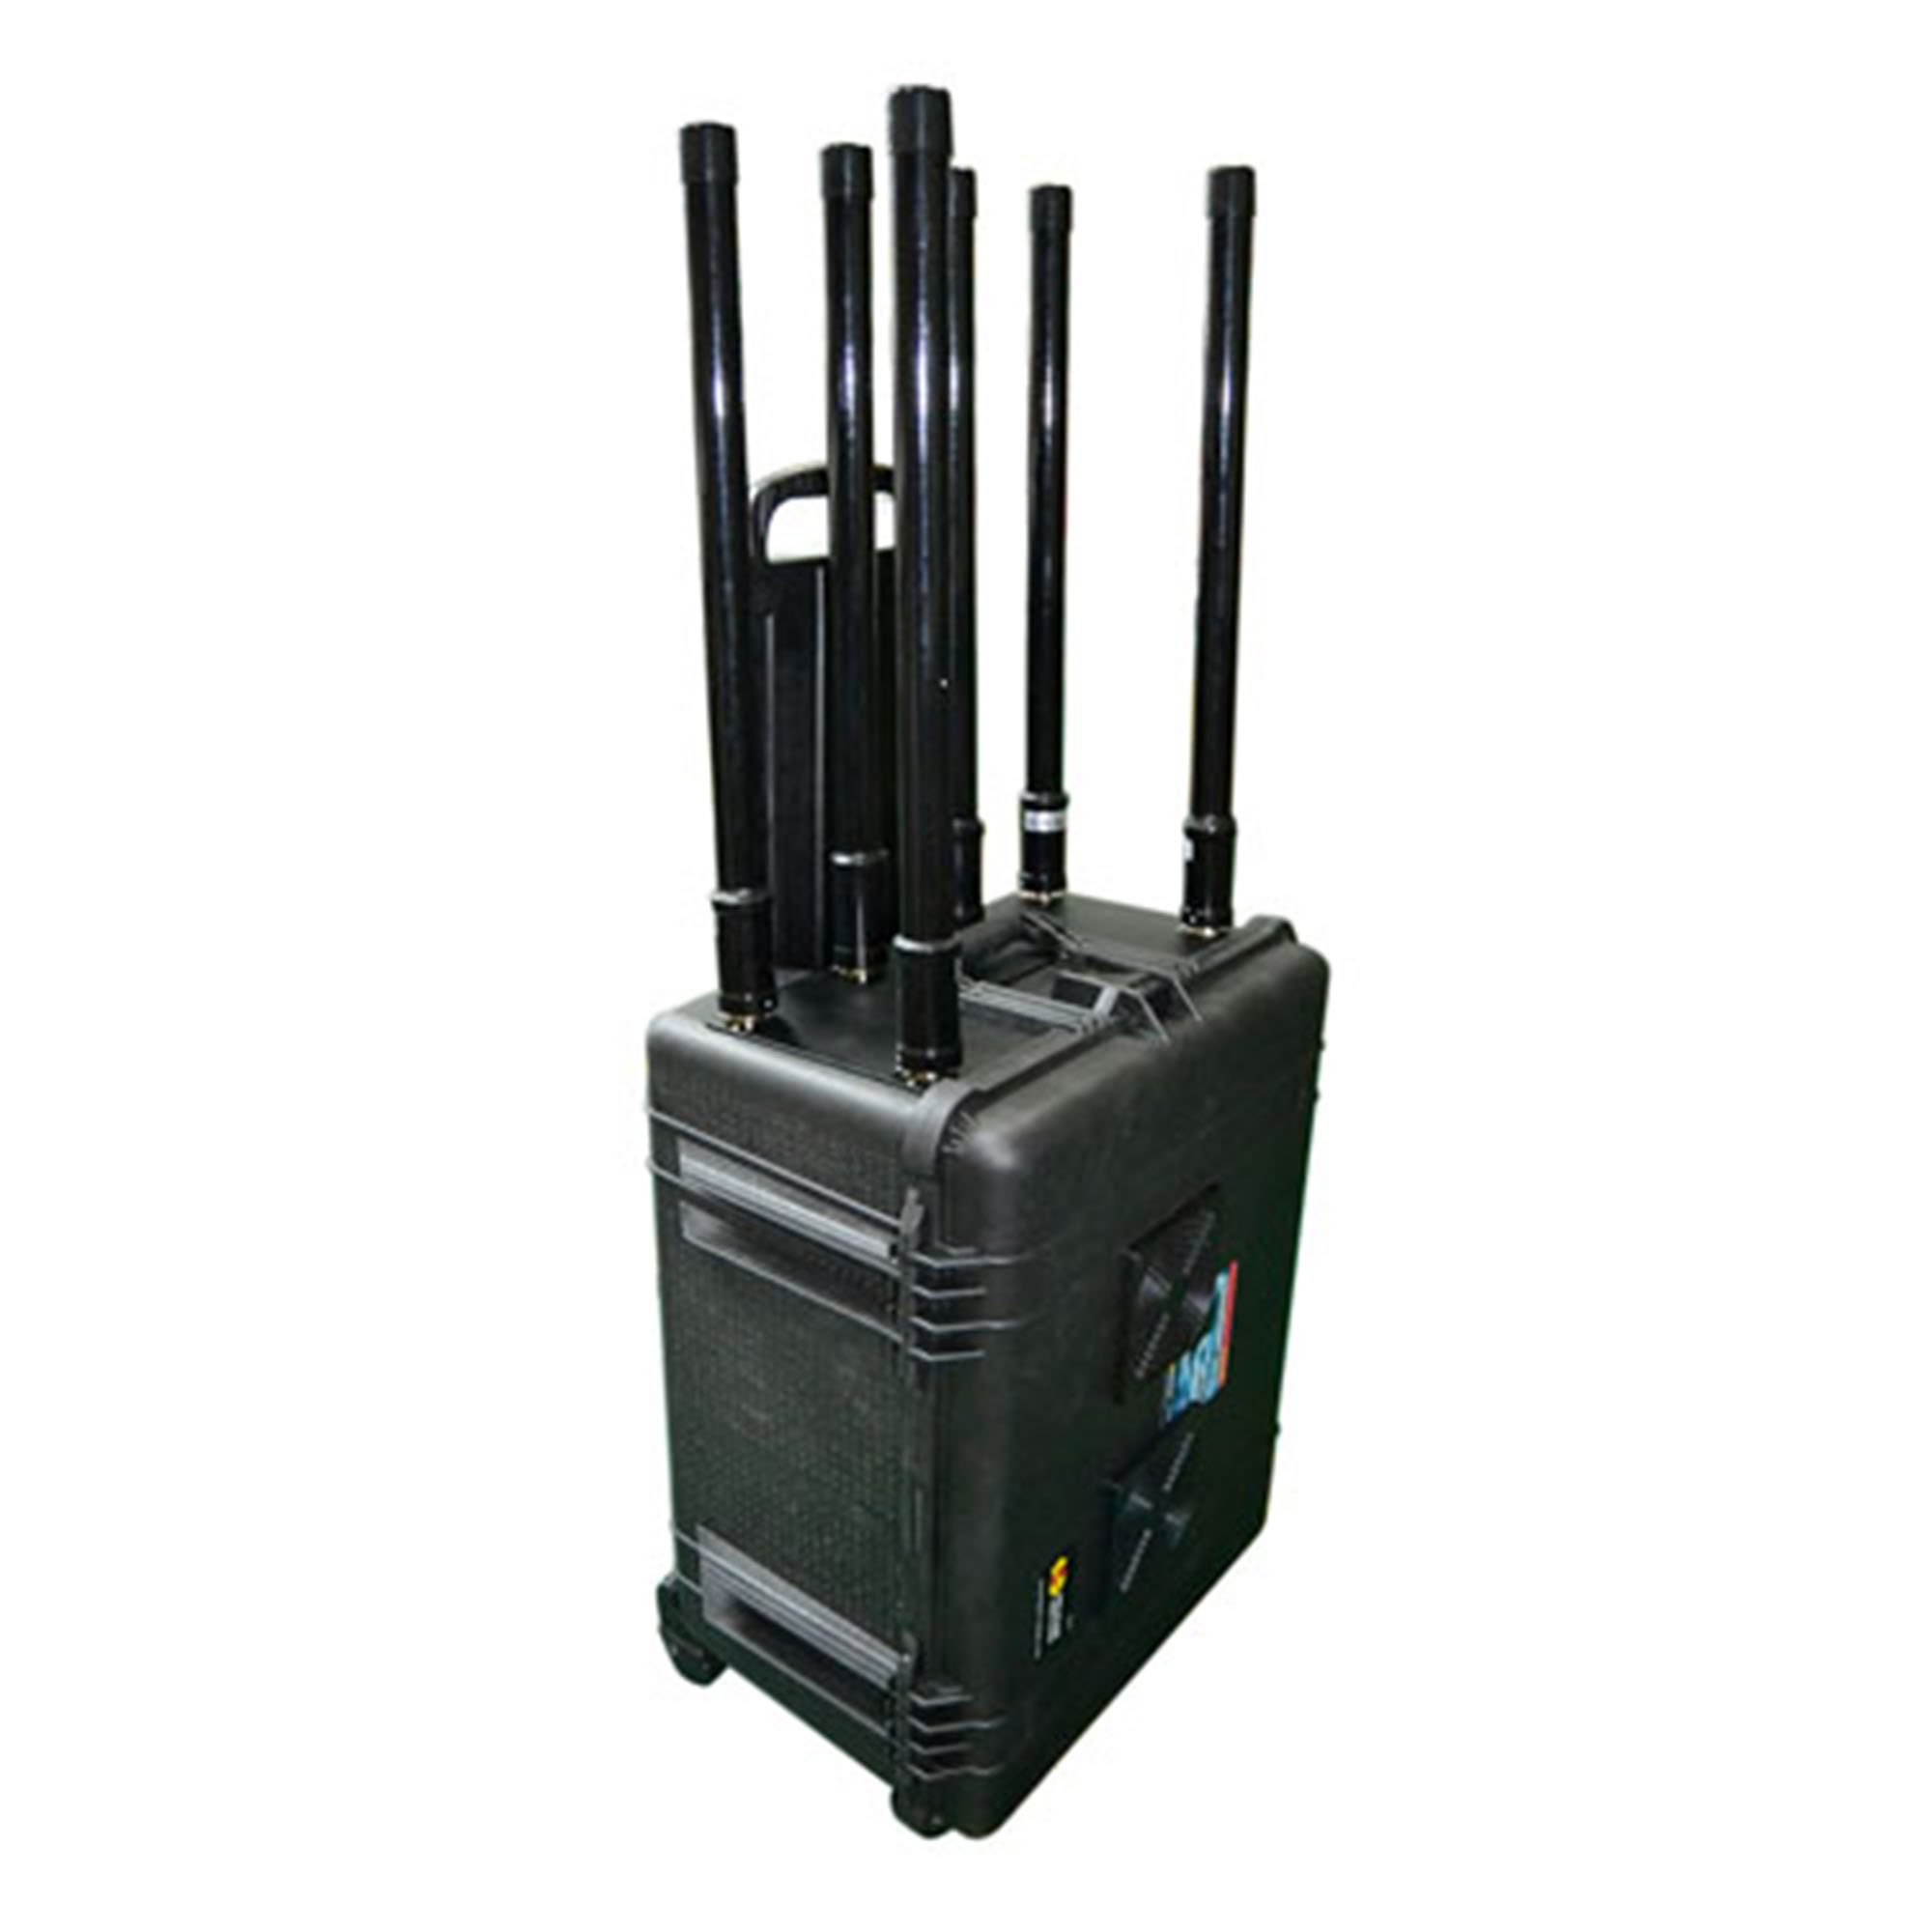 Wireless signal jammer , Portable GPS Jammer, 2G and 3G Mobile Phone Signal Jammer